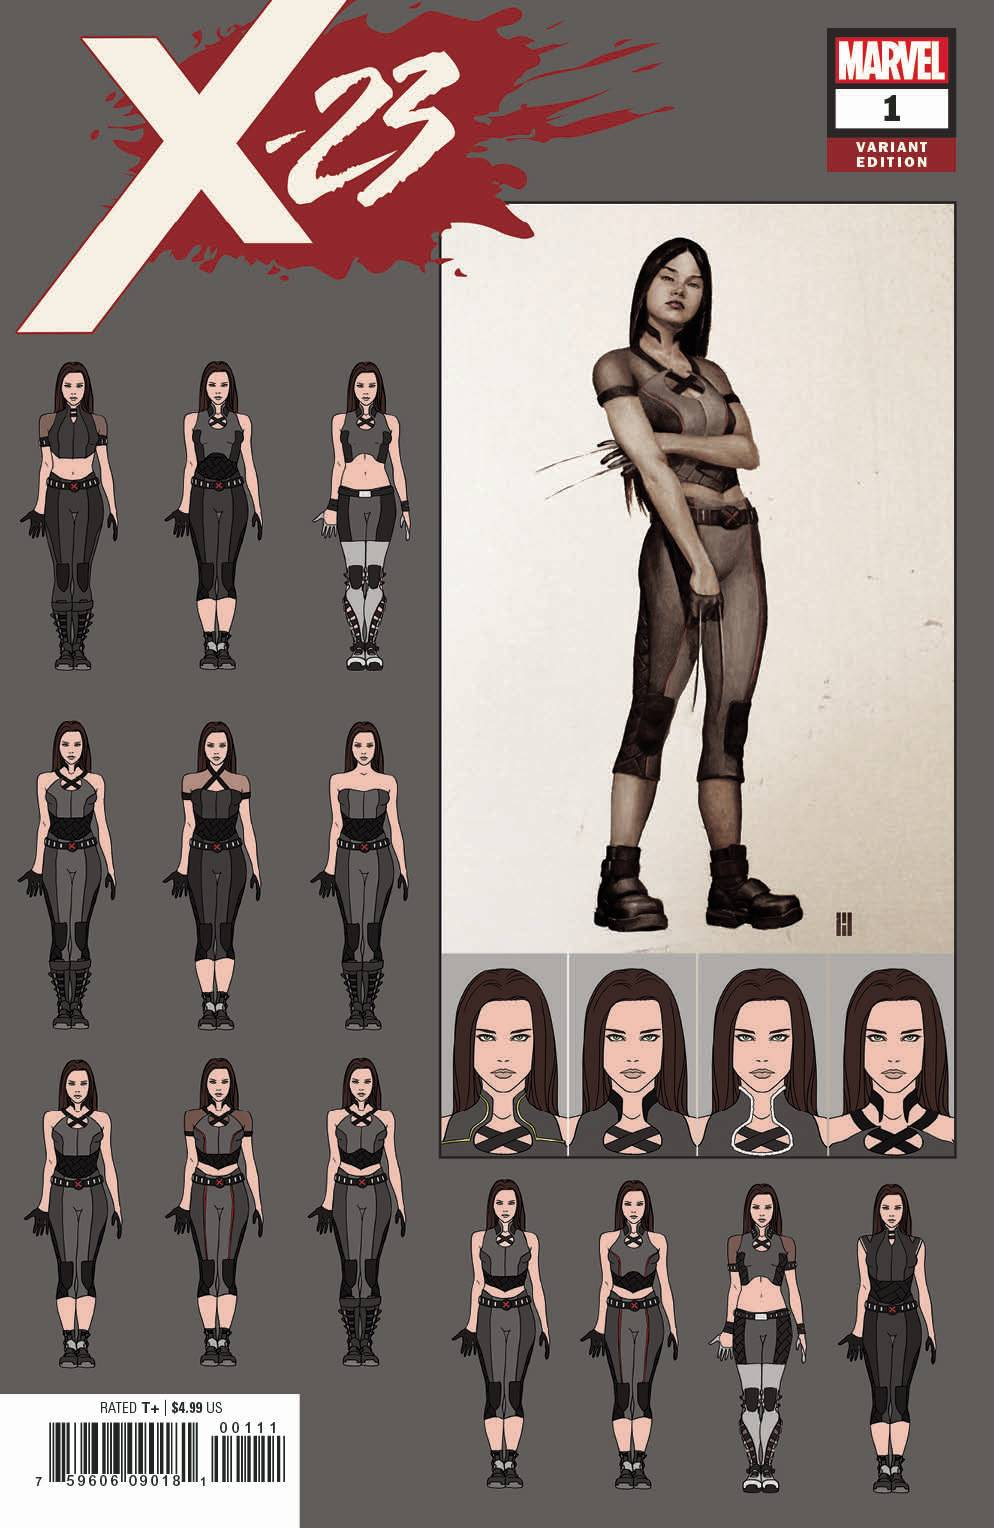 X-23 #1 CHOI DESIGN 1:10 INCENTIVE VARIANT FOC 06/18 (ADVANCE ORDER)